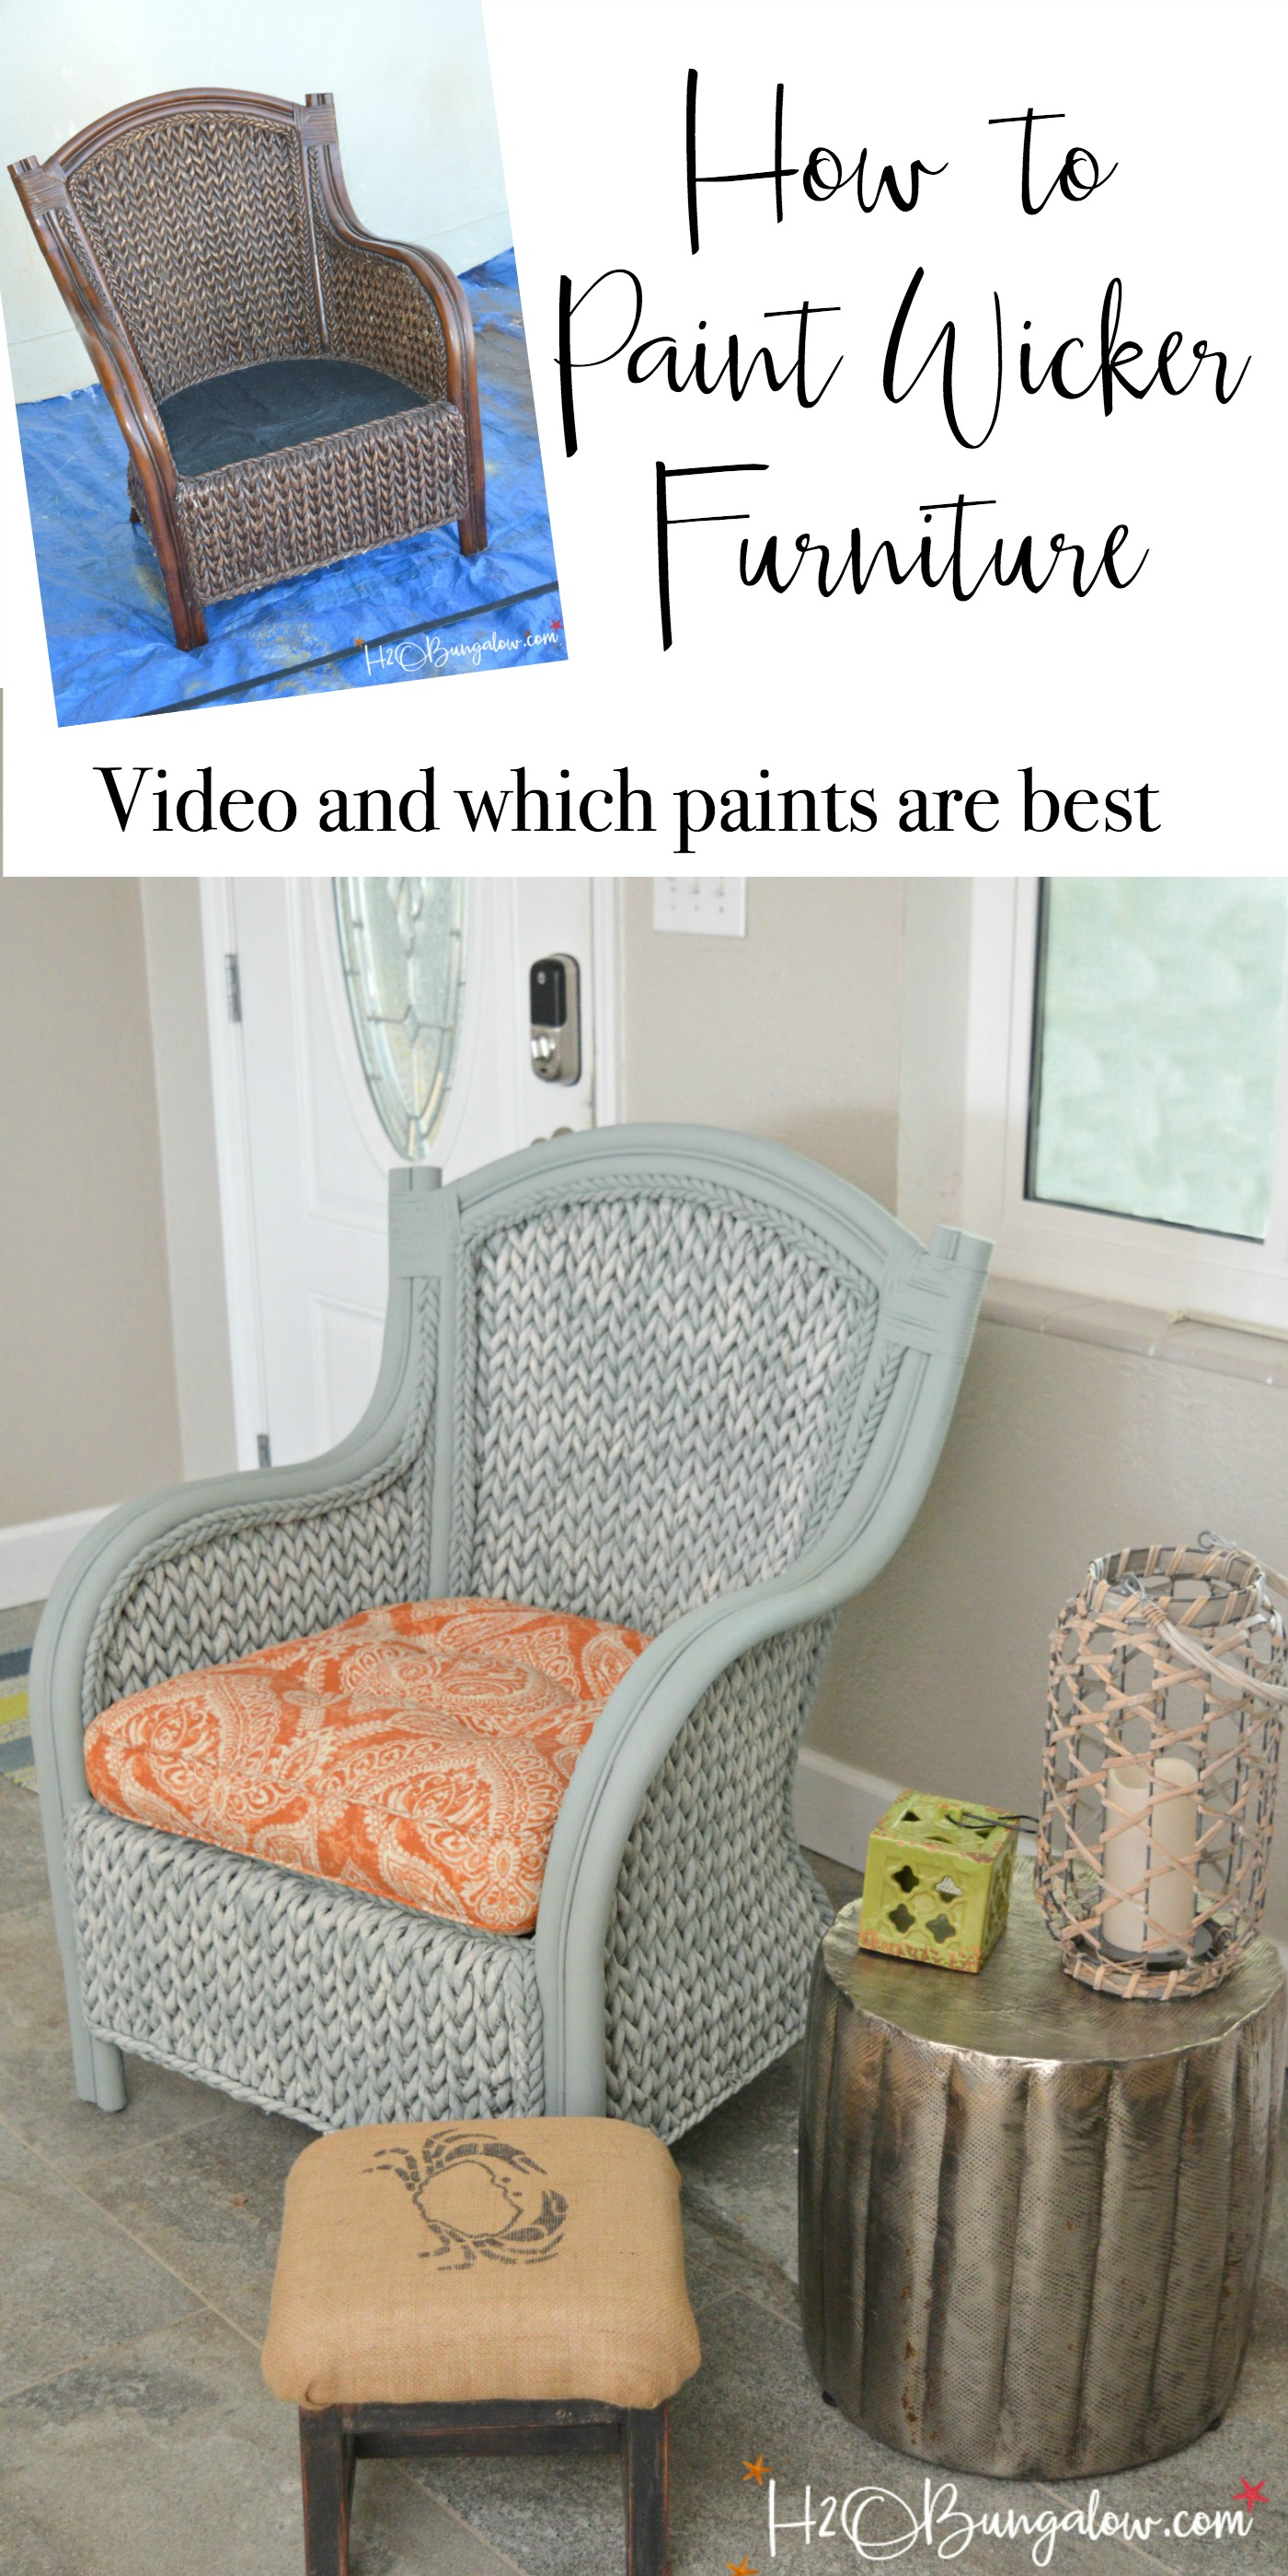 How To Paint Wicker Furniture With A Paint Sprayer. Tutorial And Video  Shows How To